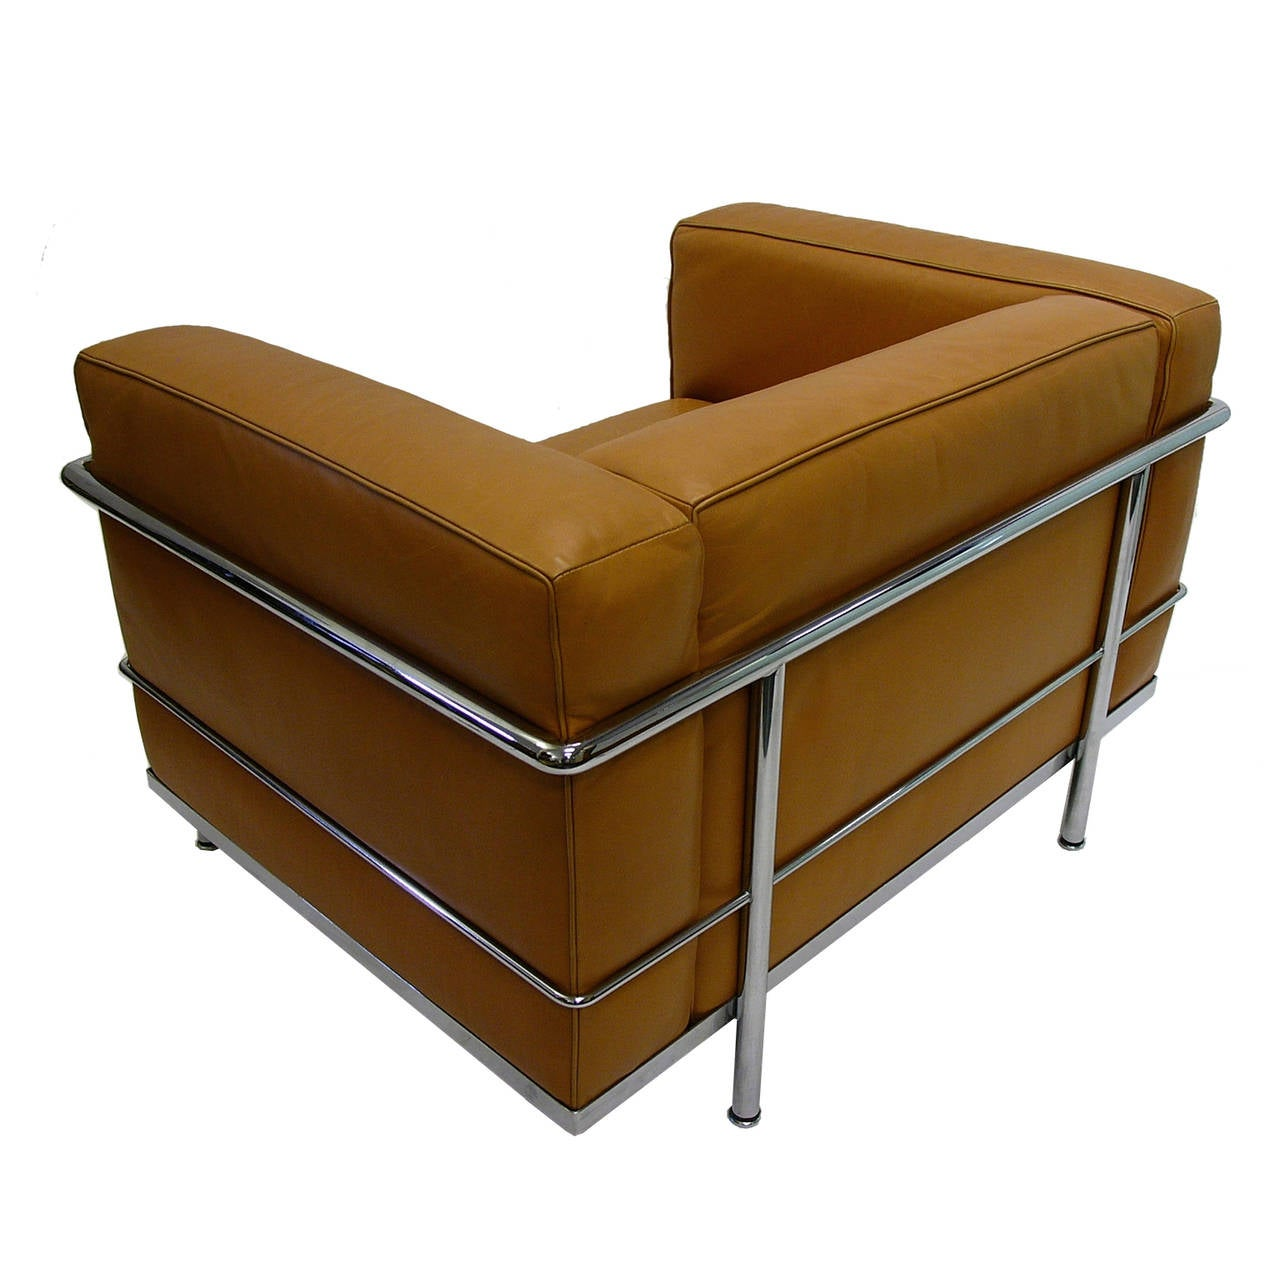 le corbusier chaise longue pony skin with Id F 1940782 on Id F 5990763 likewise Id F 6332623 moreover Corbusier Chaise Design Fidelity Lounge Le Corbusier Chaise Longue Originale Prezzo likewise Id F 7811013 additionally Id F 1940782.